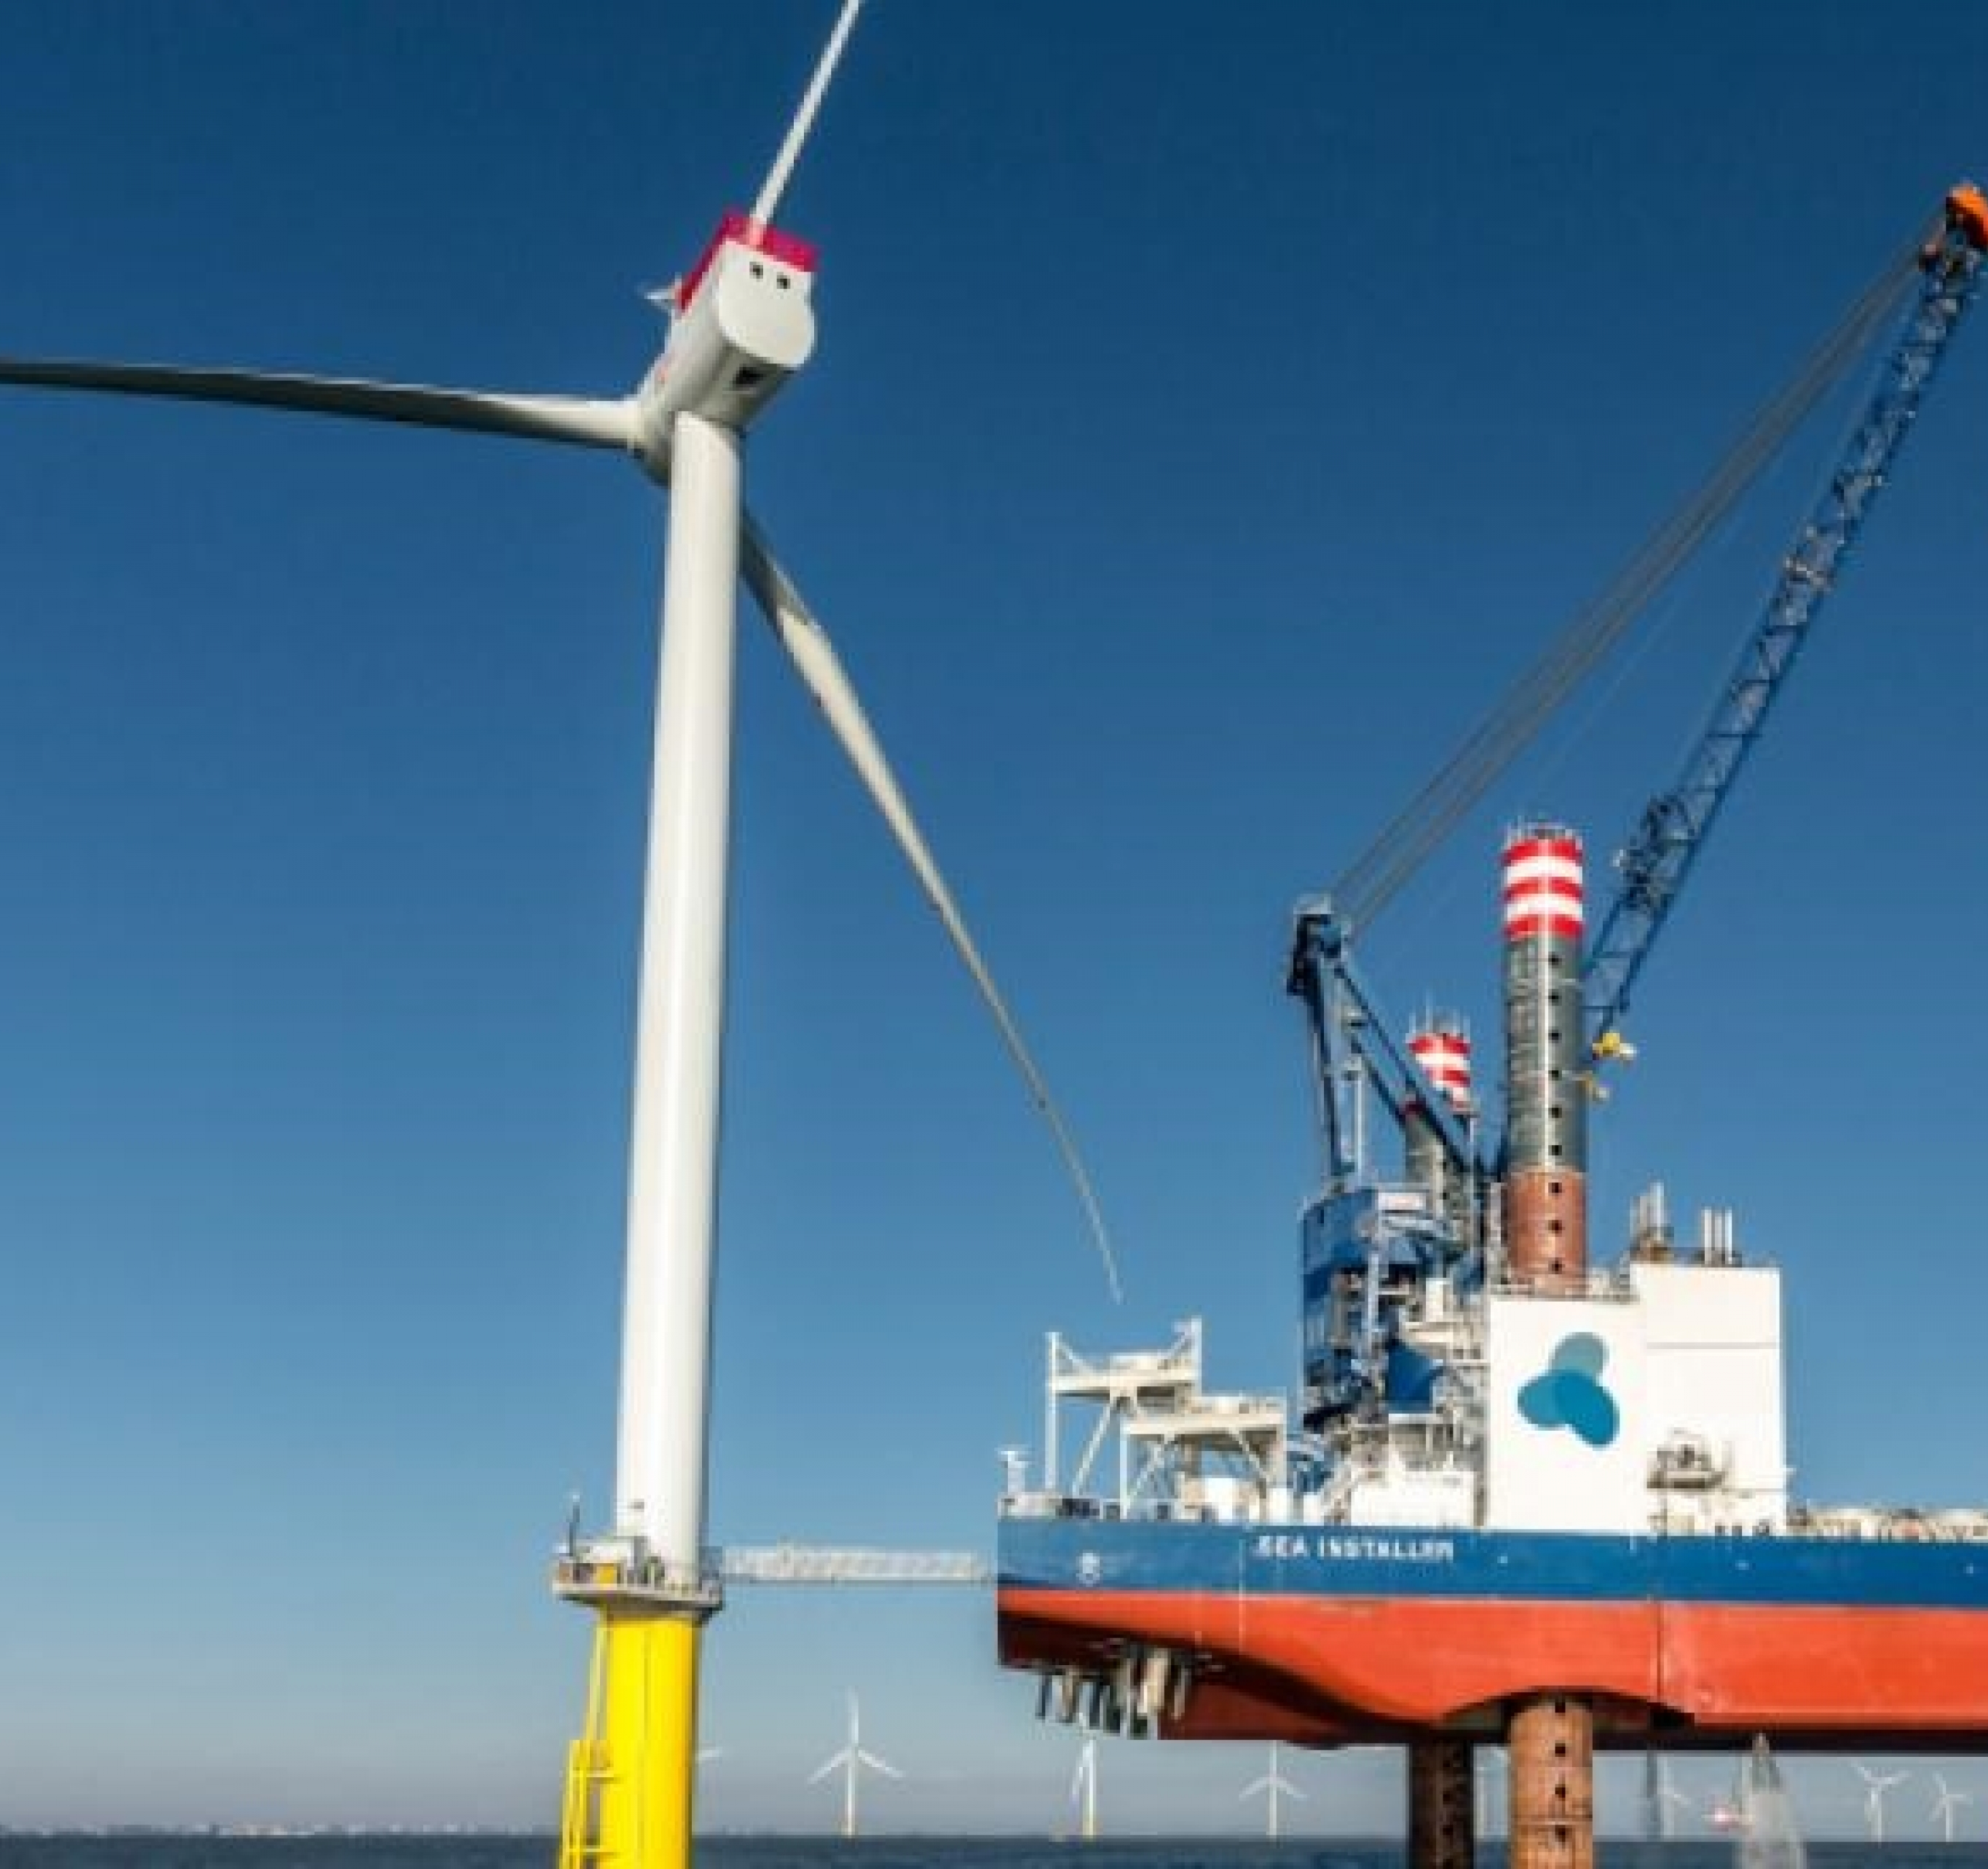 Vetrotech Saint-Gobain Marine - Specialty-Vessel, Wind Mill Installer